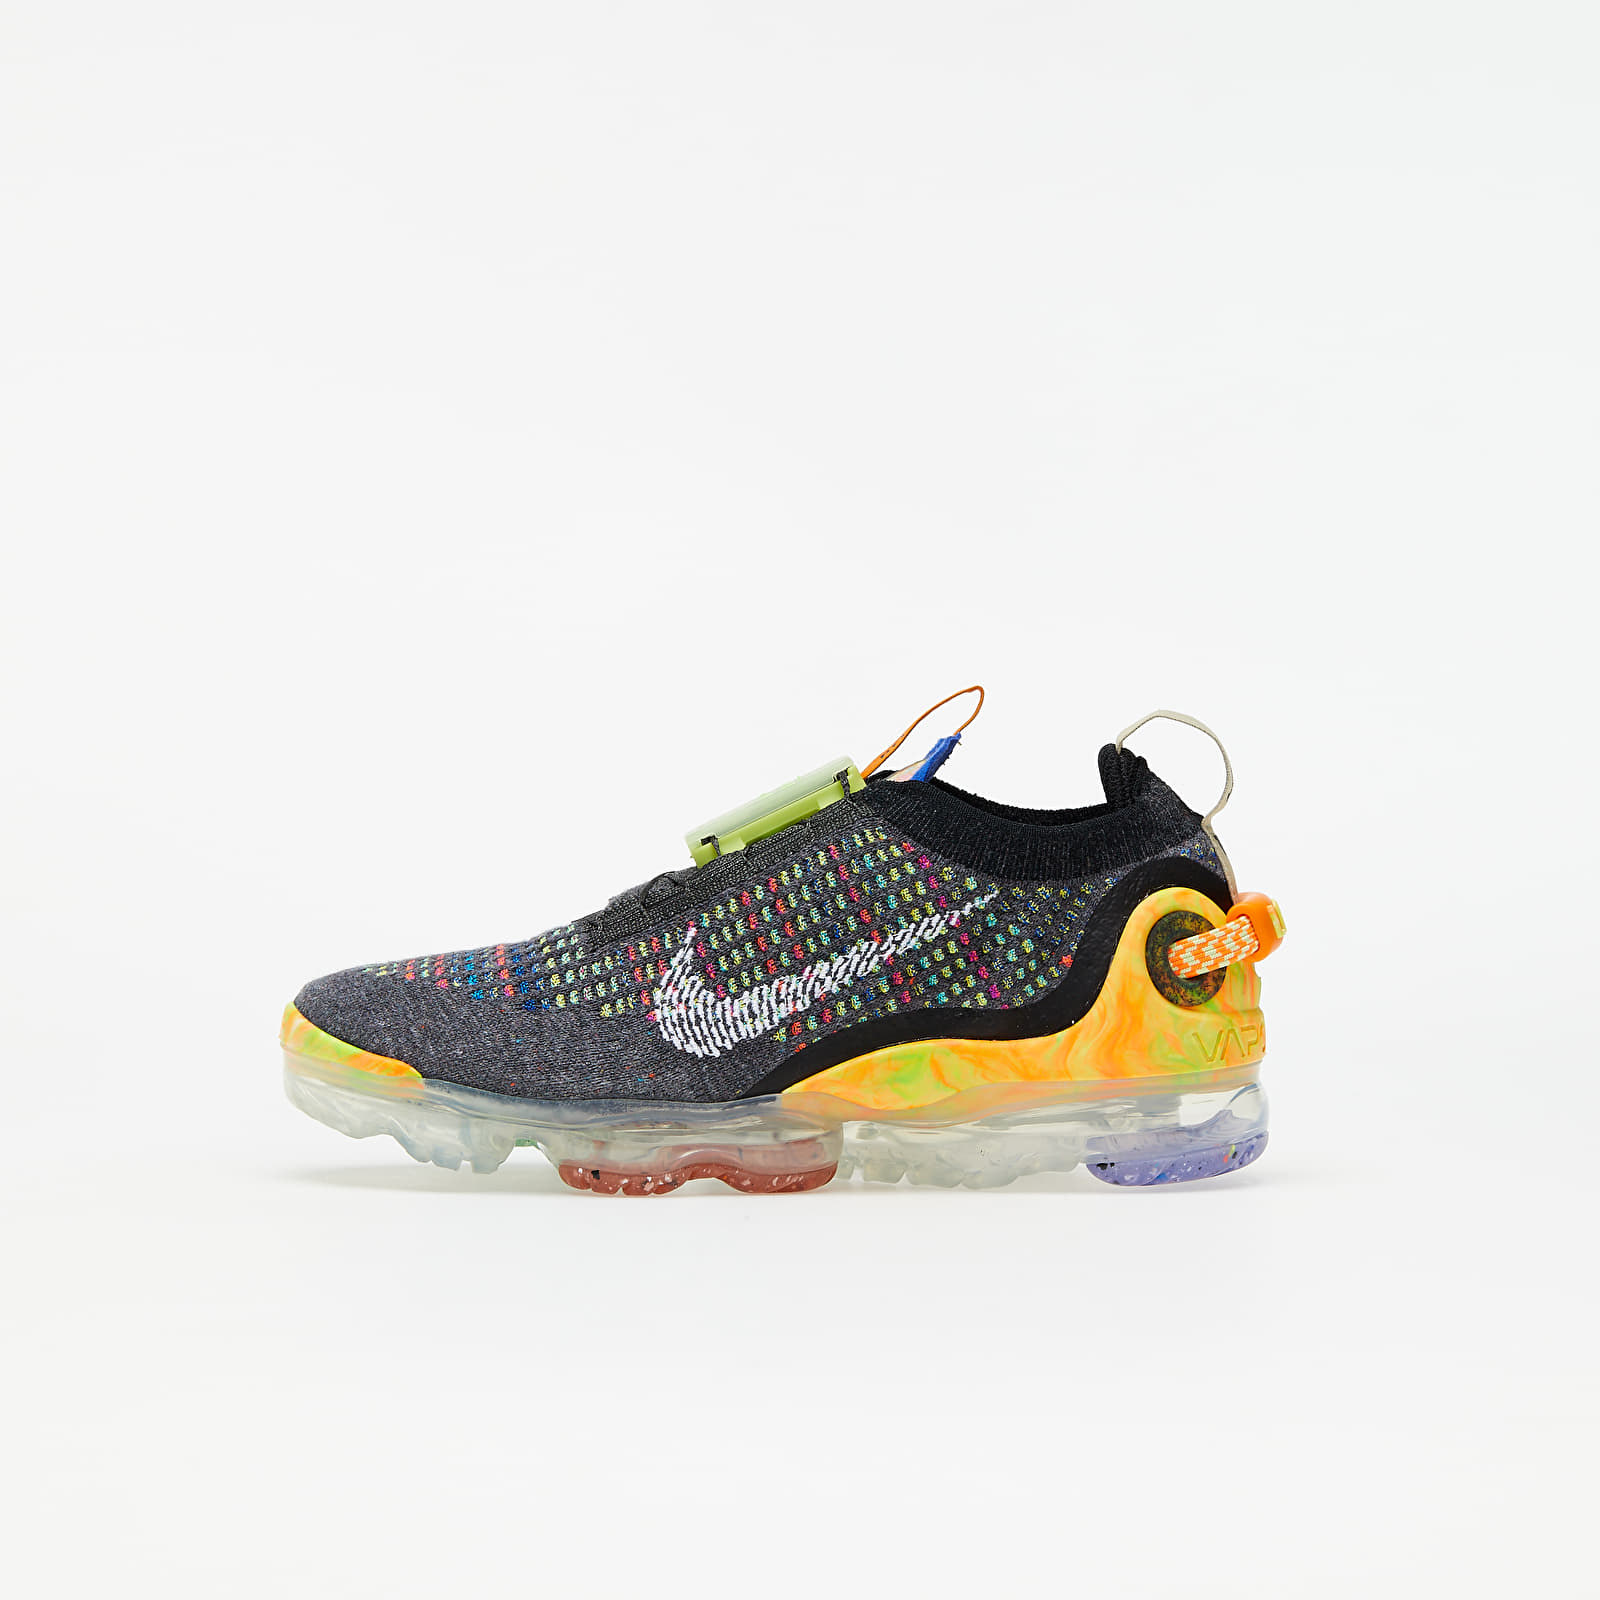 Zapatillas de niño Nike Air VaporMax 2020 FK (GS) Iron Grey/ White-Multi-Color